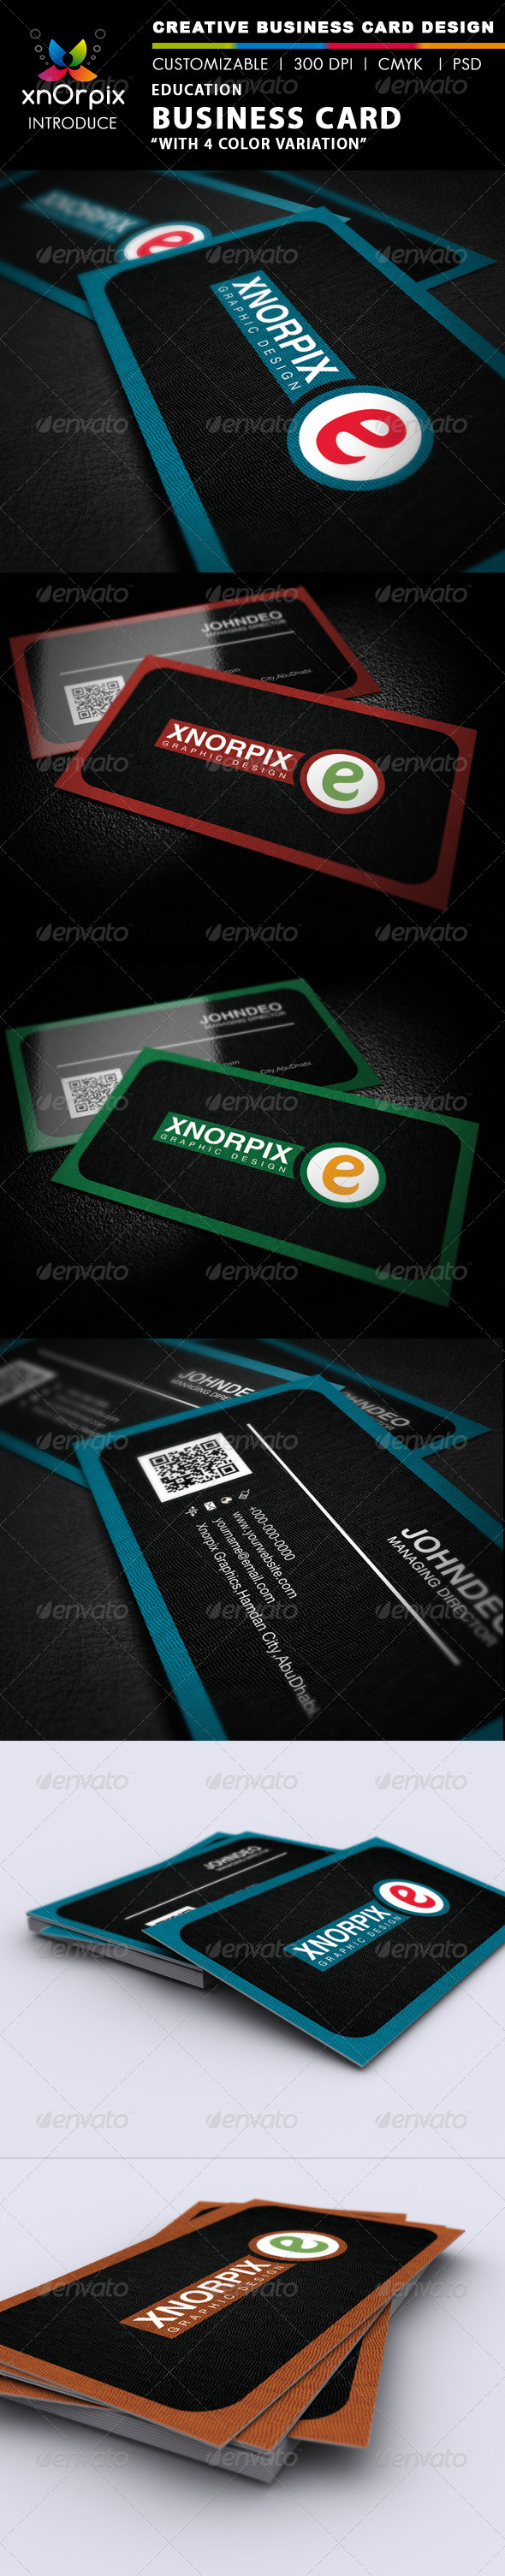 Education Business Card - Corporate Business Cards